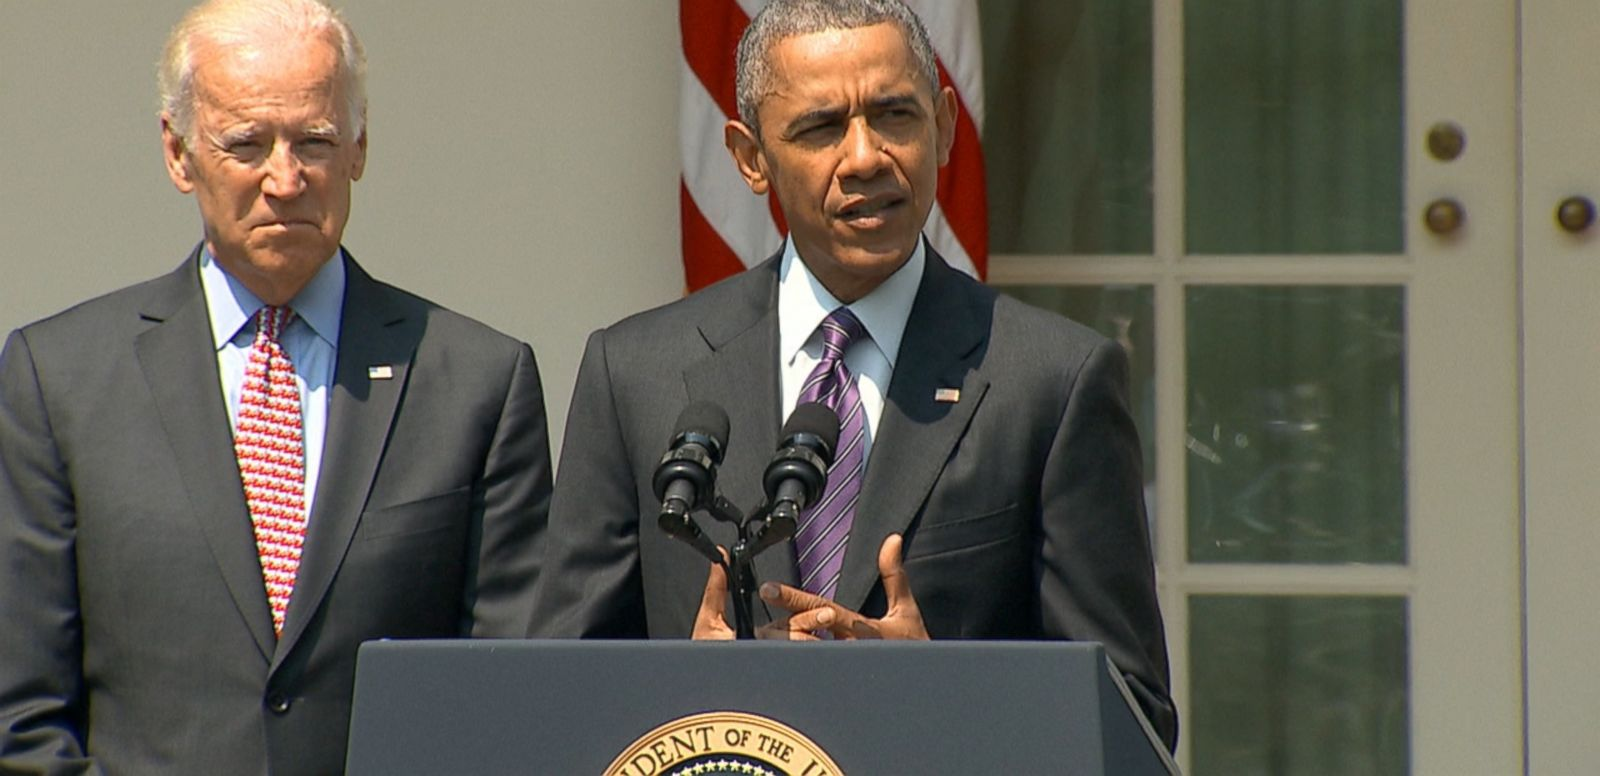 VIDEO: President Obama announces the formal reestablishment of diplomatic relations between the two countries for the first time in more than 50 years.